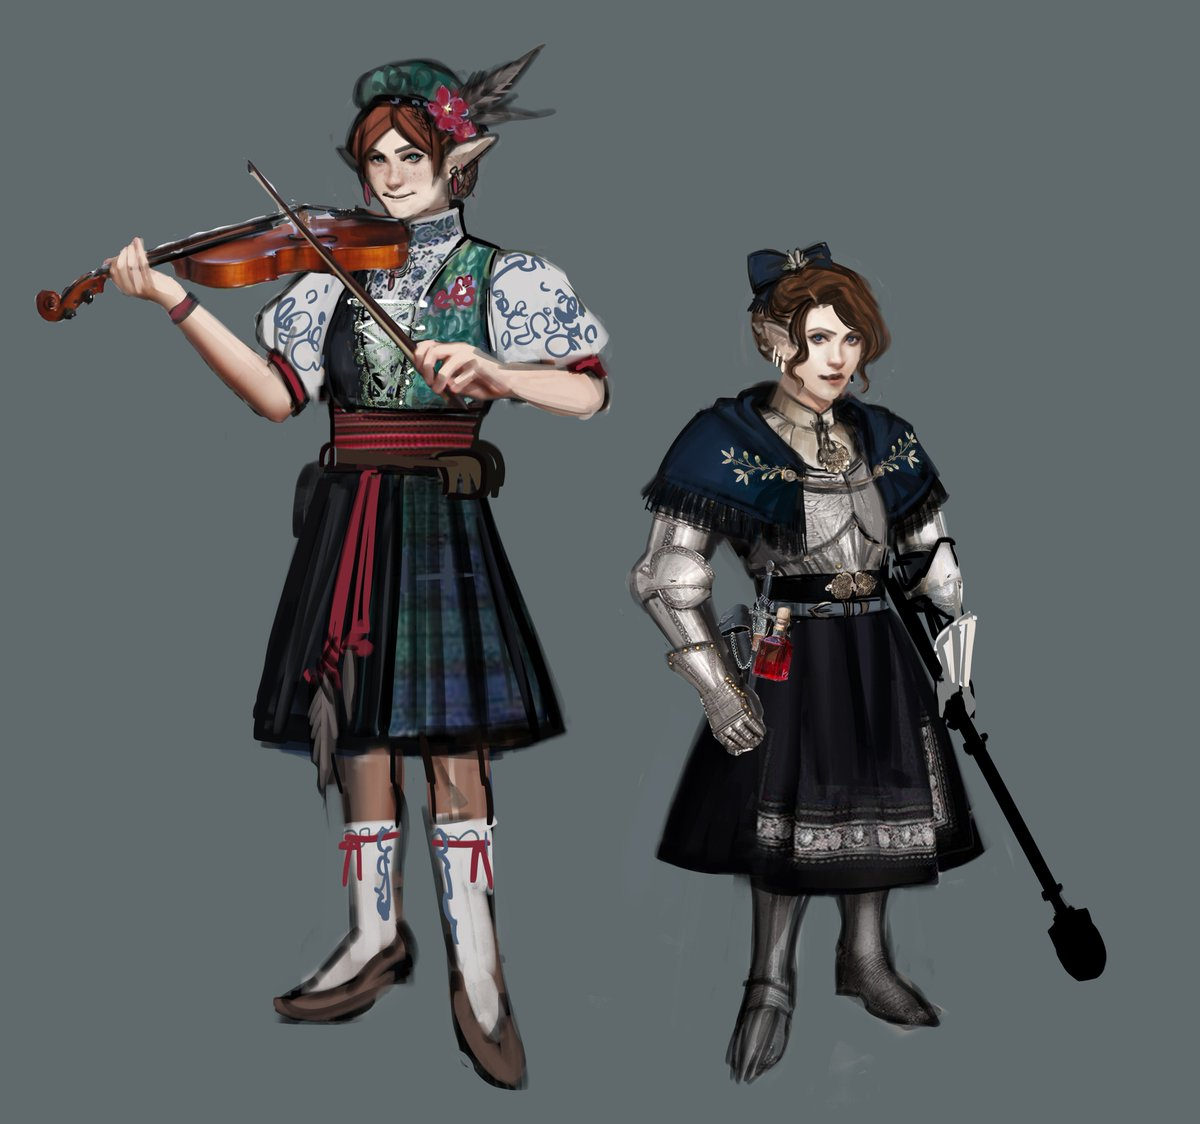 elf bard and halfling cleric inspired by Scandivanian traditional dresses  #dungeonsanddragons <br>http://pic.twitter.com/ptbPIIf6XY